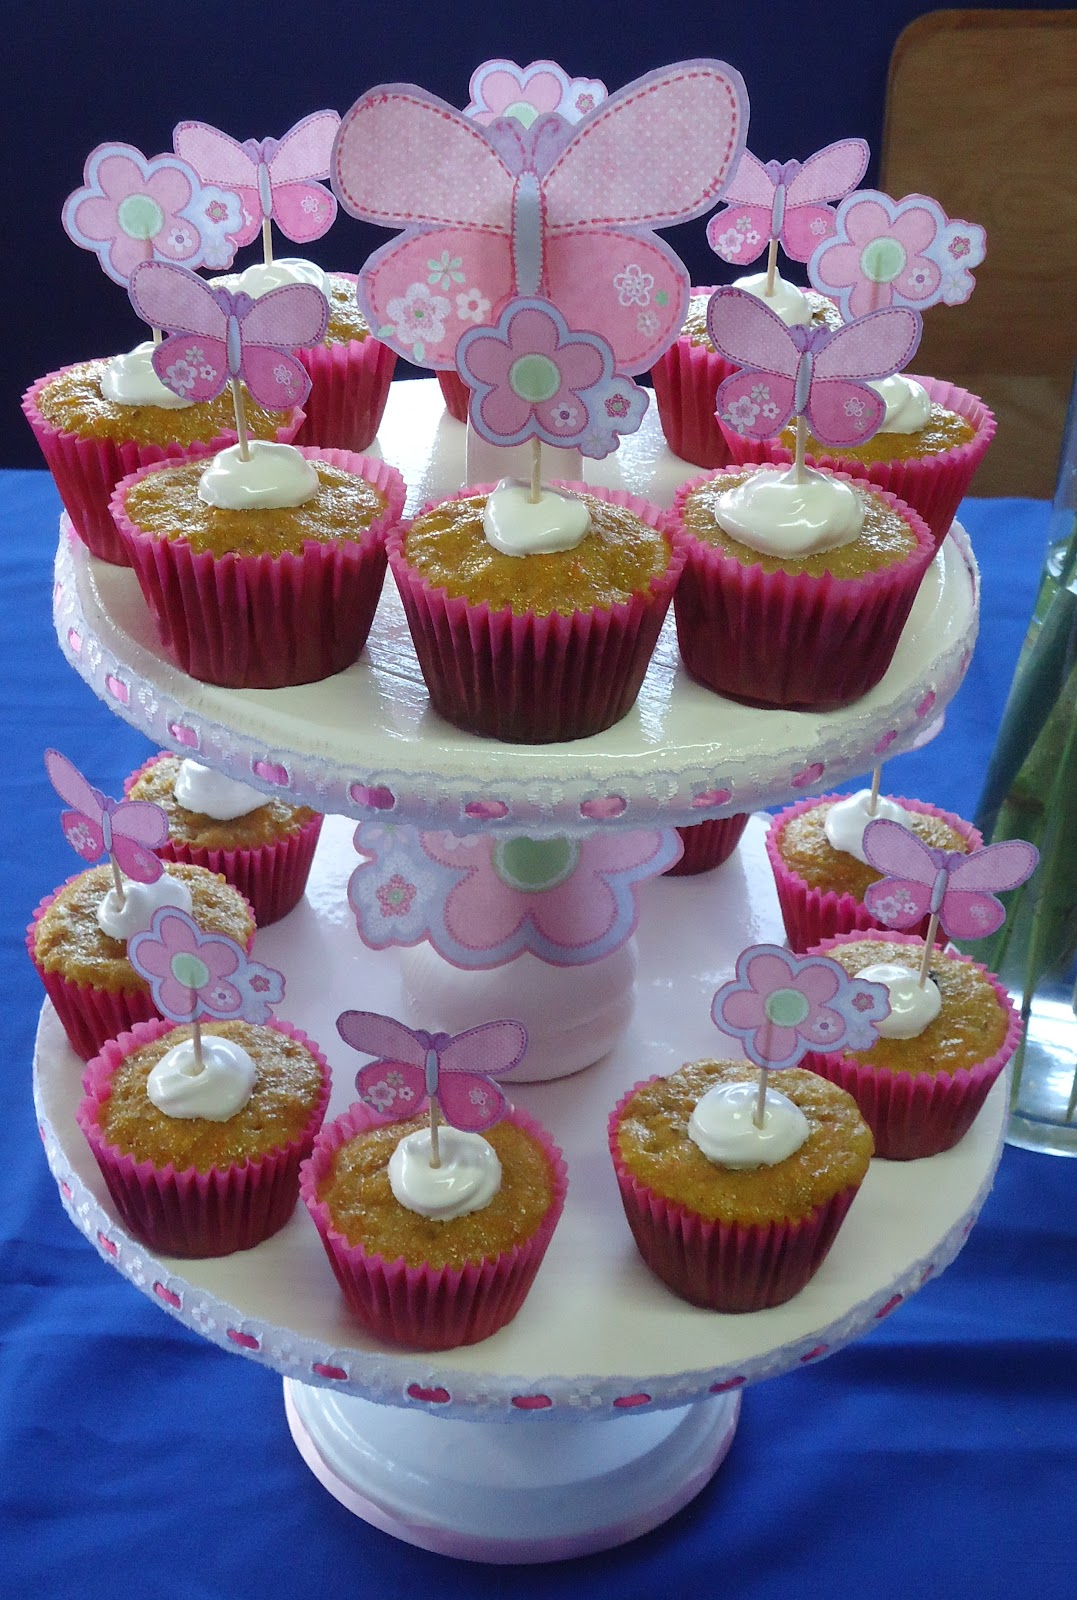 Como Decorar Kekitos Cupcakes Con Mariposas Bed Mattress Sale